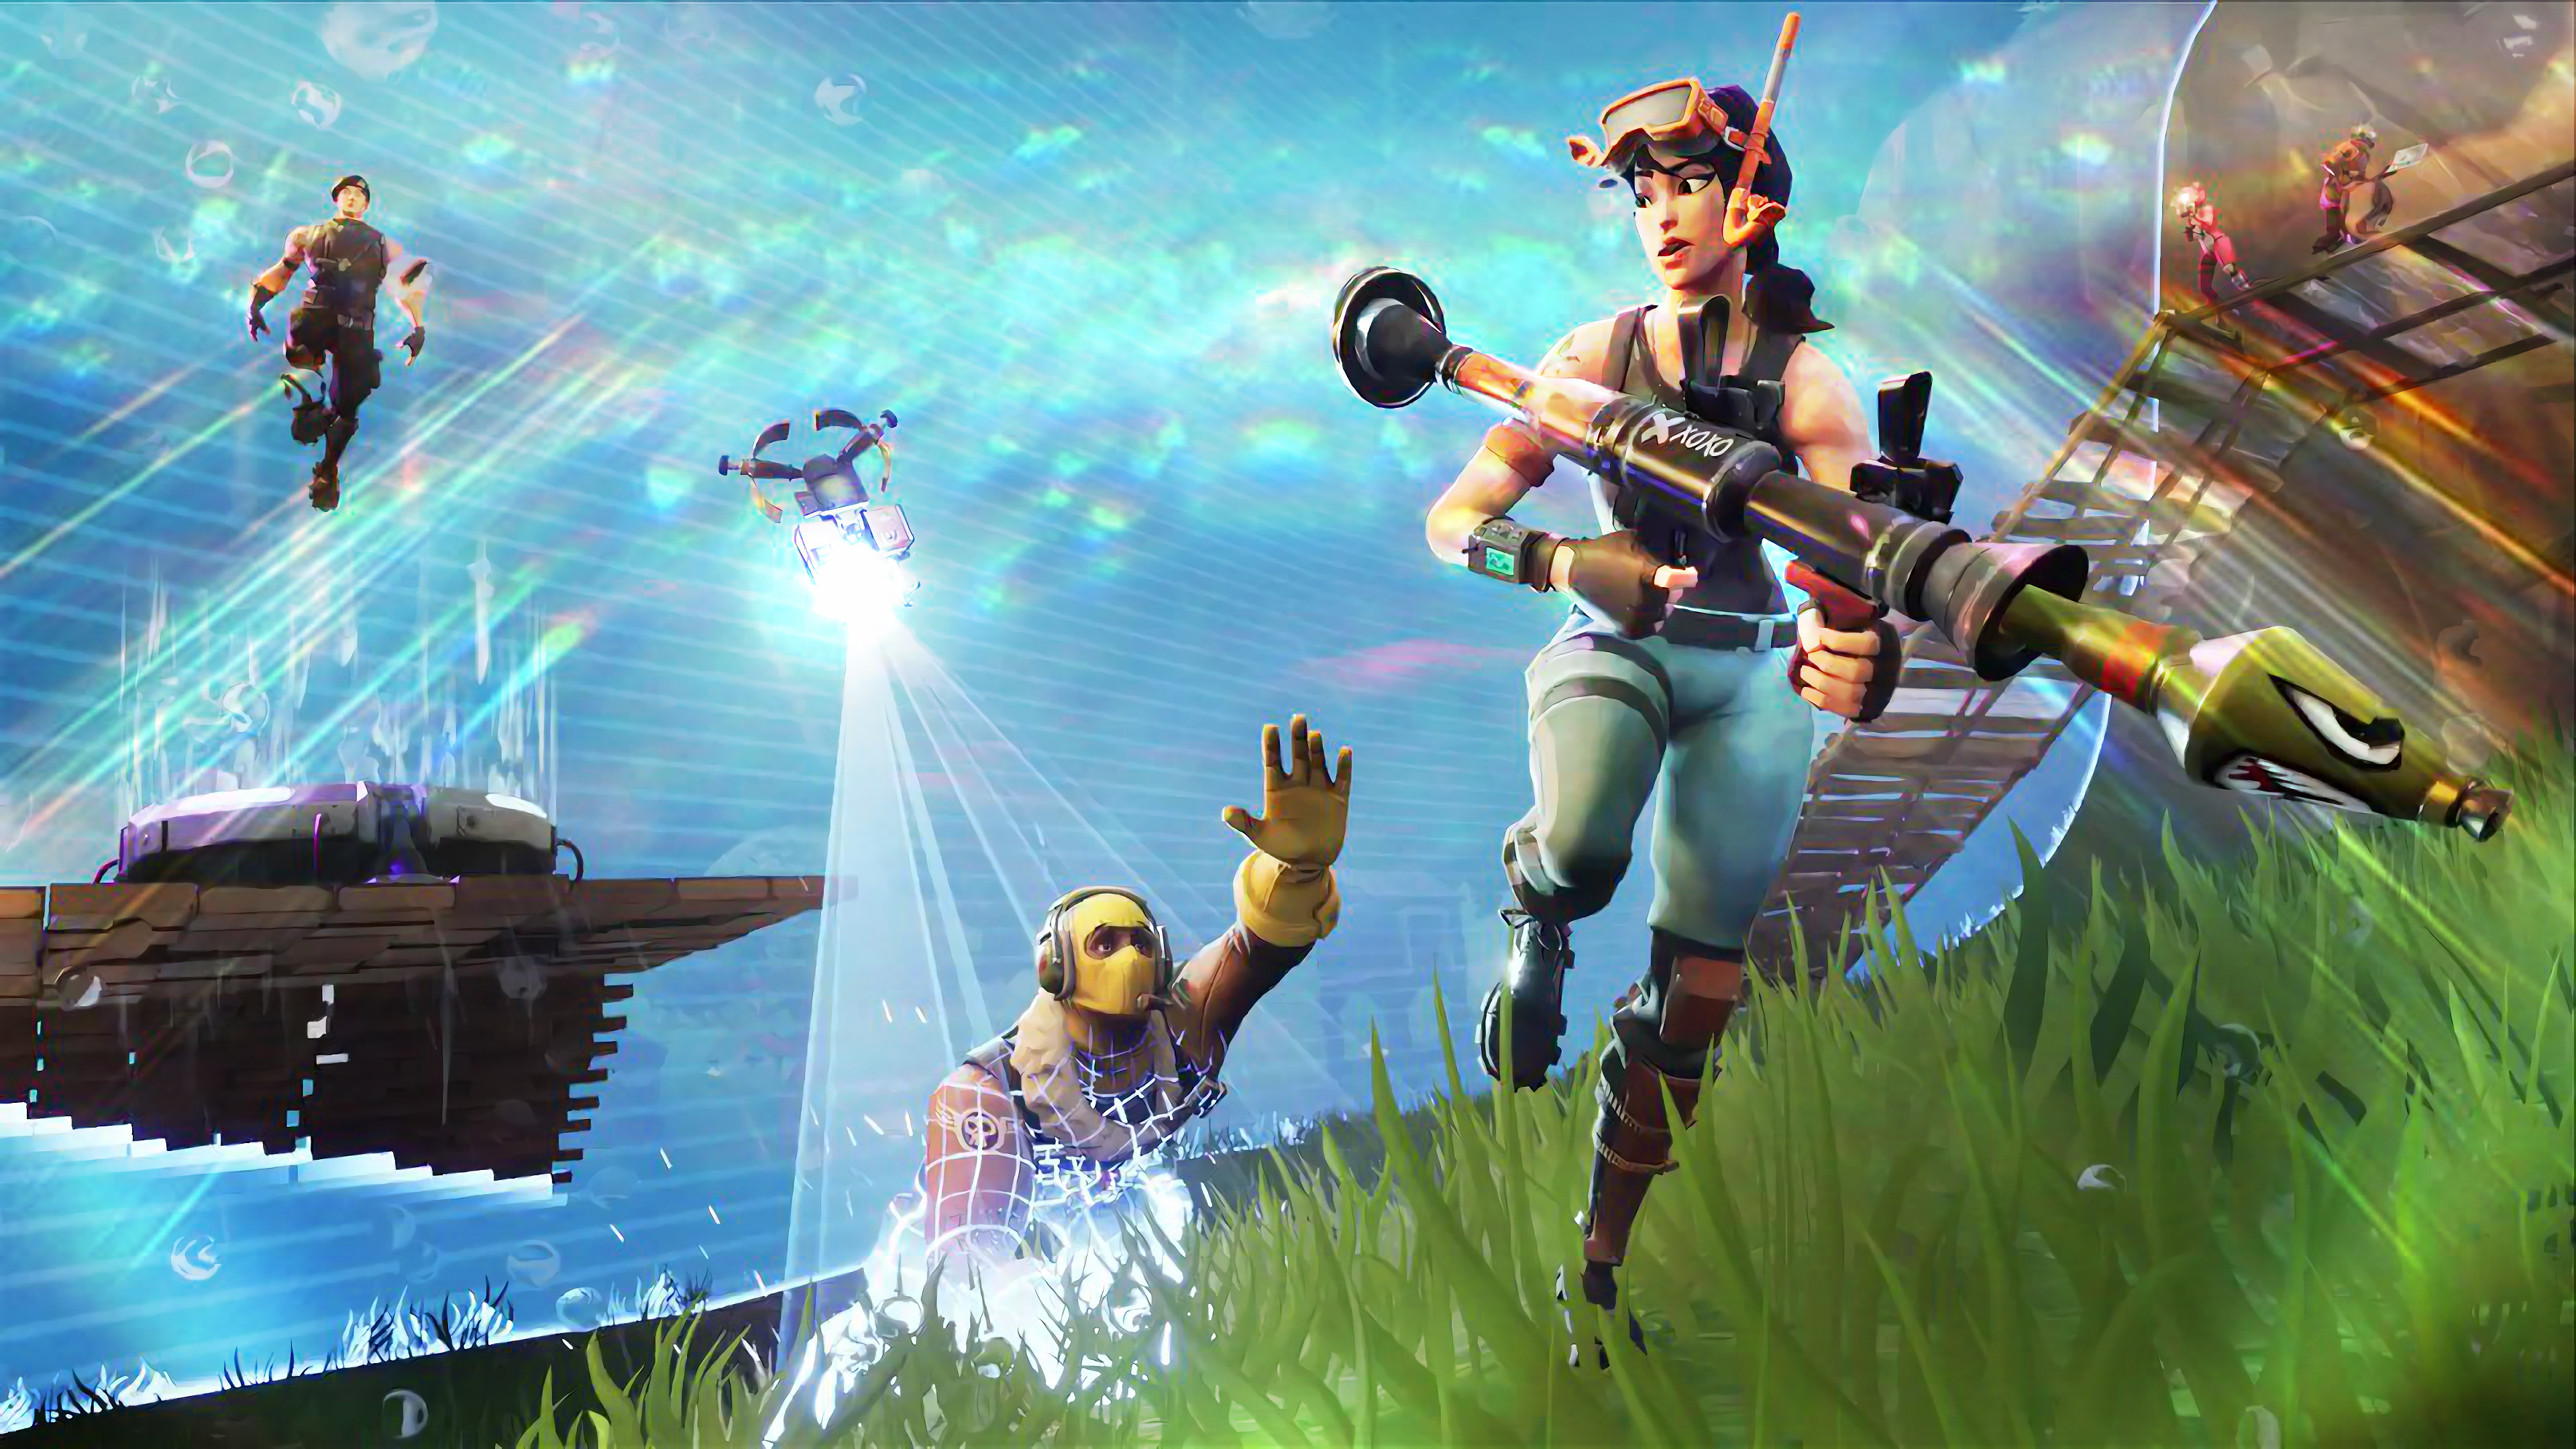 2048x1152 Image Fortnite Season 6 Free V Bucks